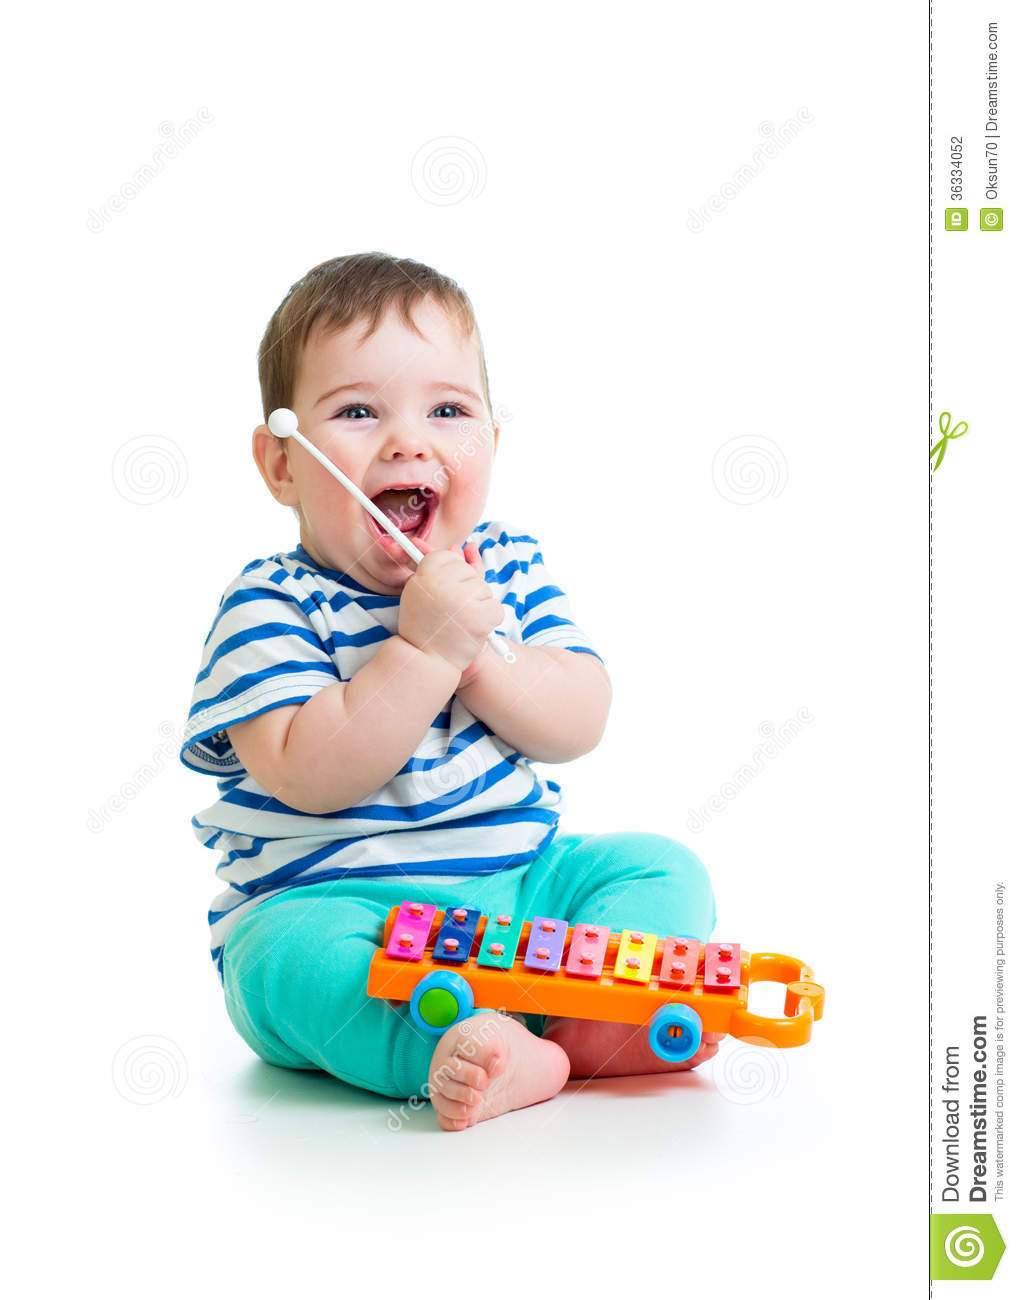 Musical Toys For Toddlers Boys : Funny child playing with musical toys stock photography